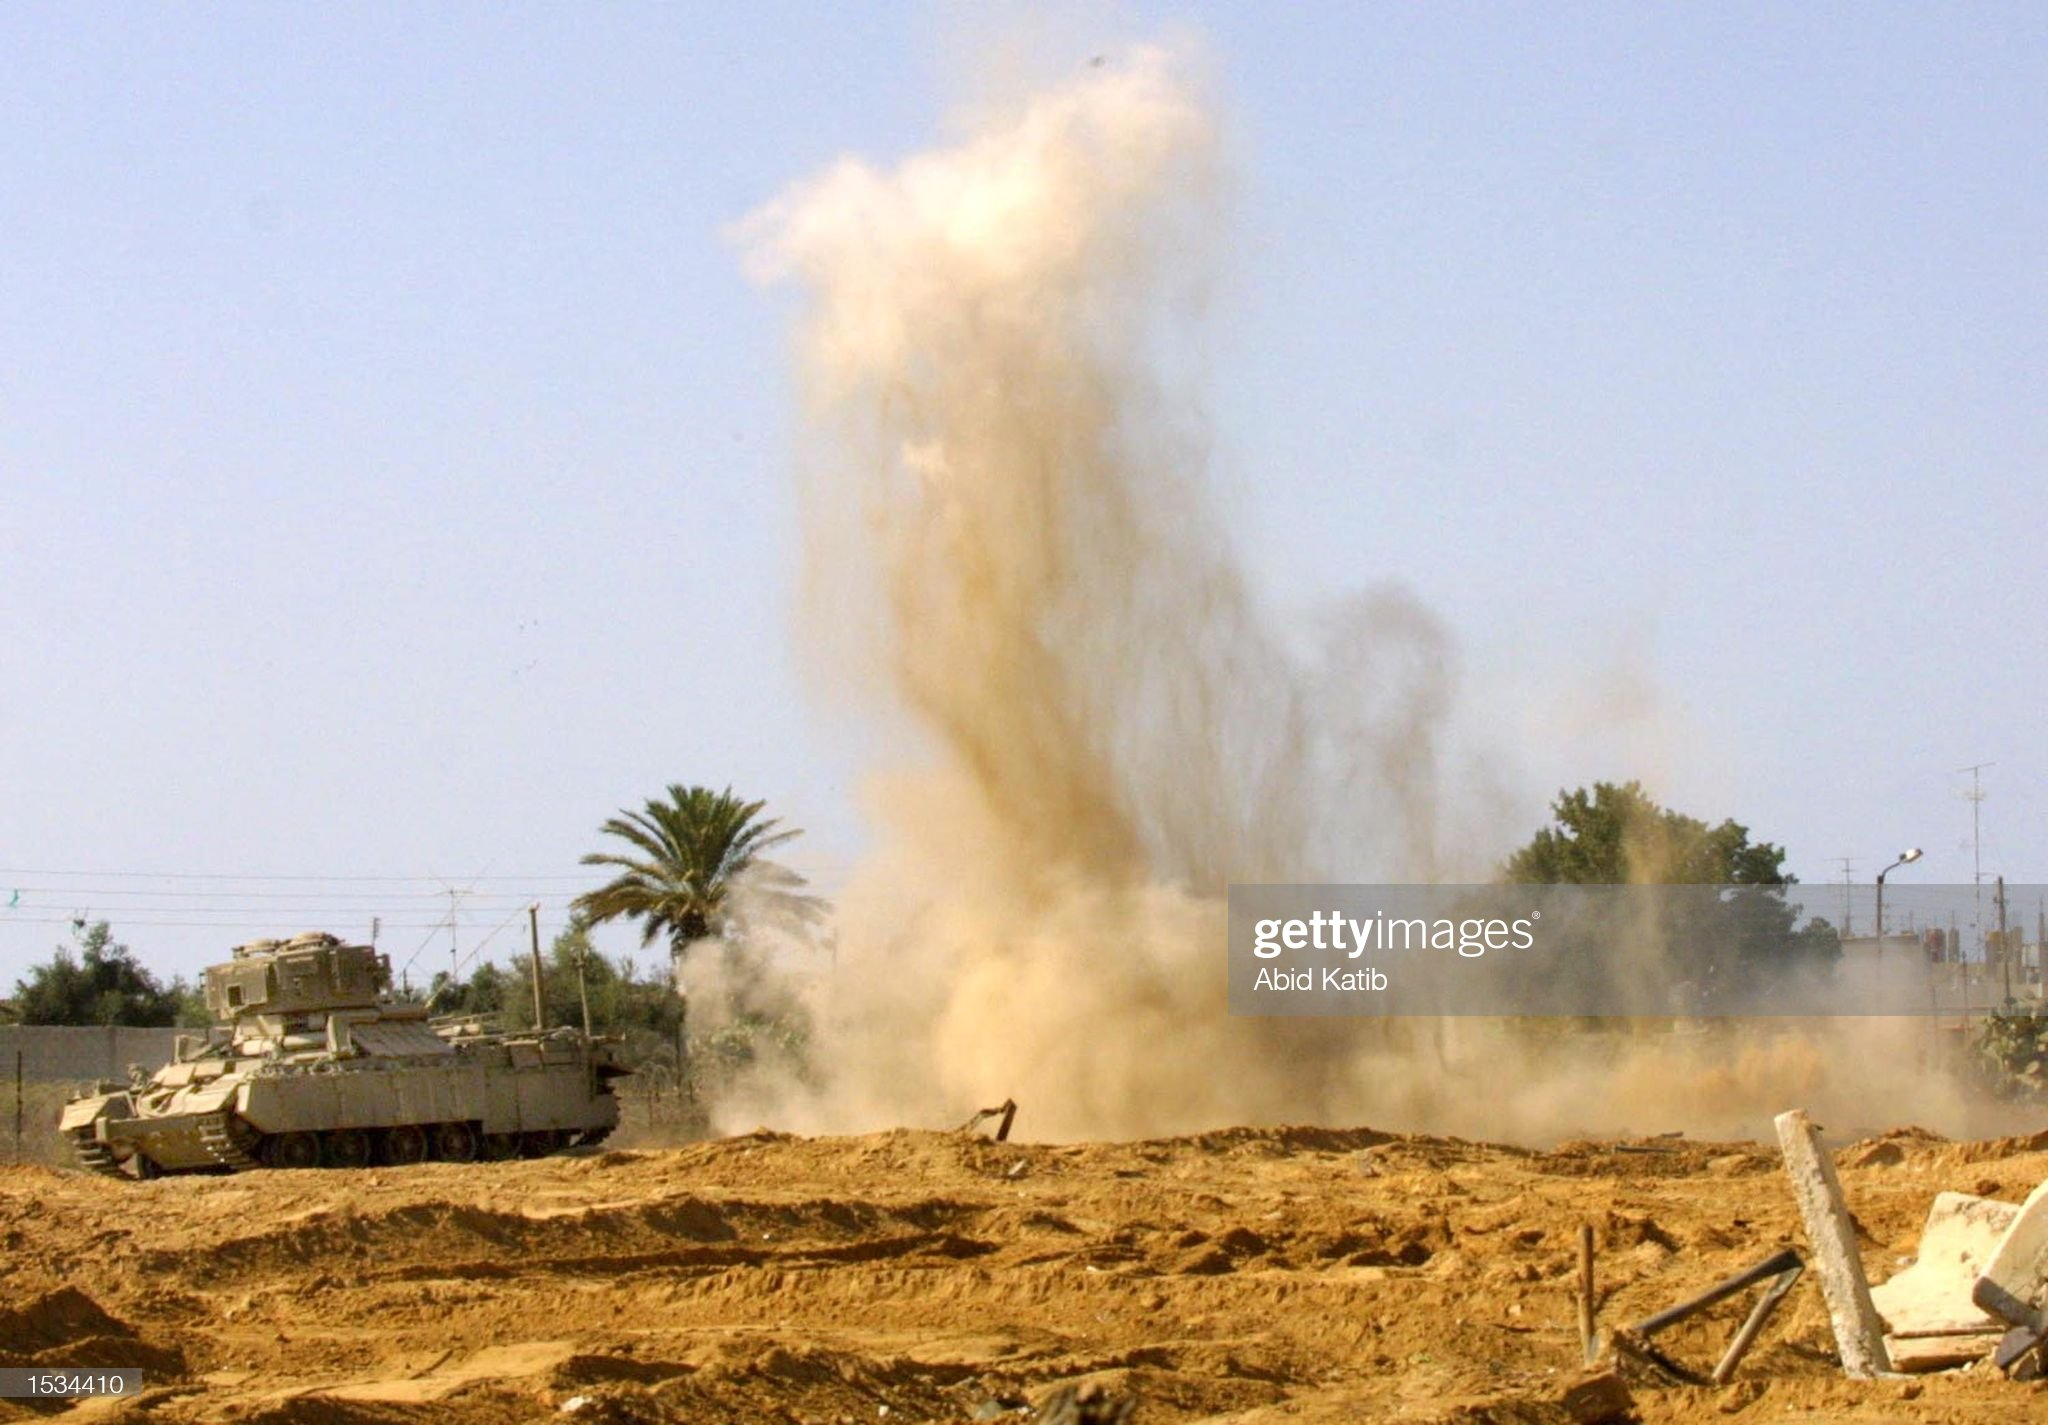 https://media.gettyimages.com/photos/an-israeli-tank-guards-as-israeli-forces-blow-up-a-tunnel-october-26-picture-id1534410?s=2048x2048